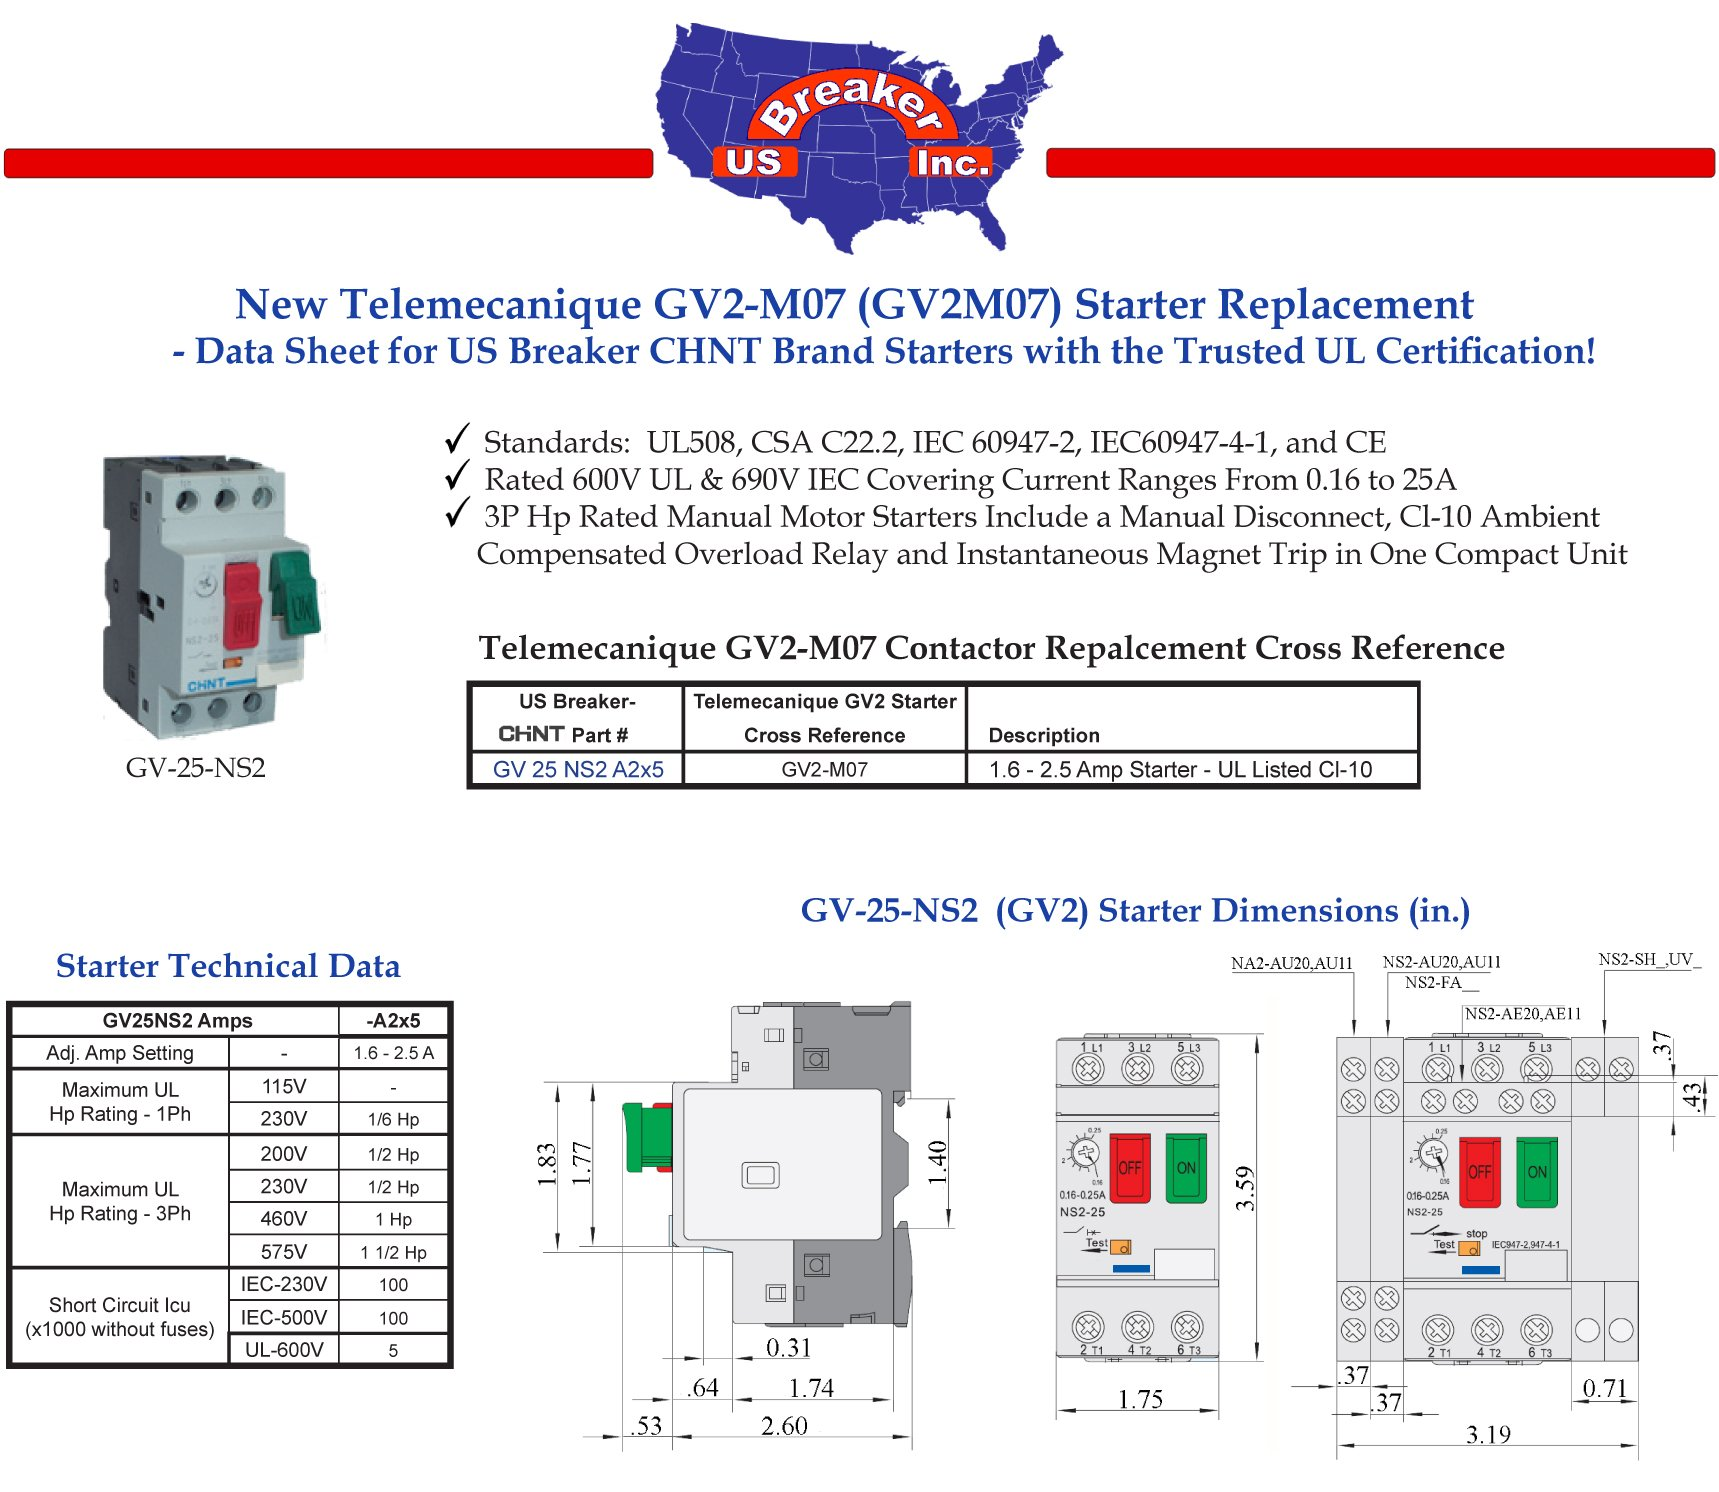 GV2-M07 Telemecanique GV2M07 Motor Starter - New Direct Replacement - UL Certified!